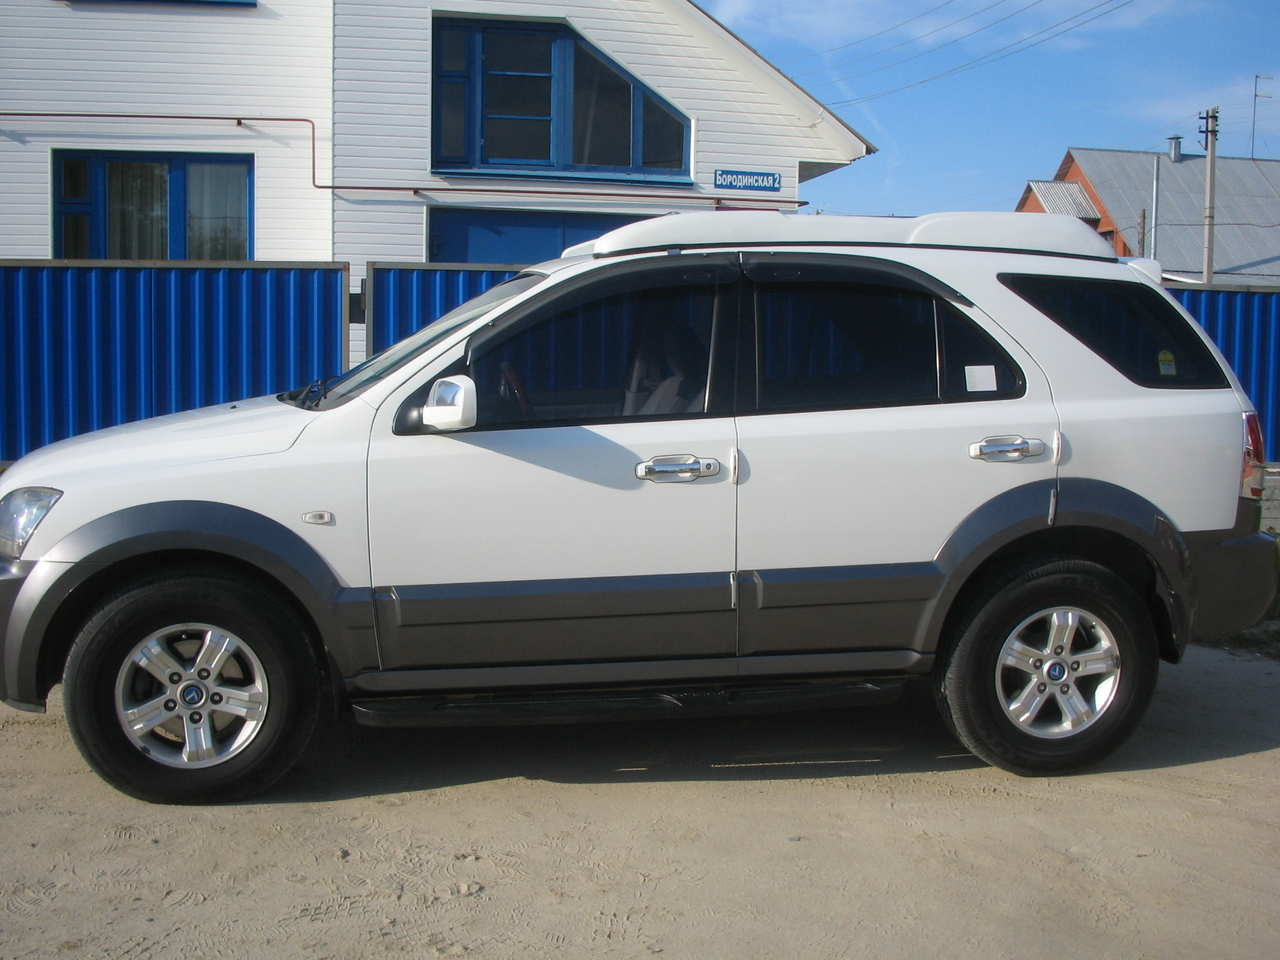 used 2003 kia sorento photos 2500cc diesel automatic for sale. Black Bedroom Furniture Sets. Home Design Ideas